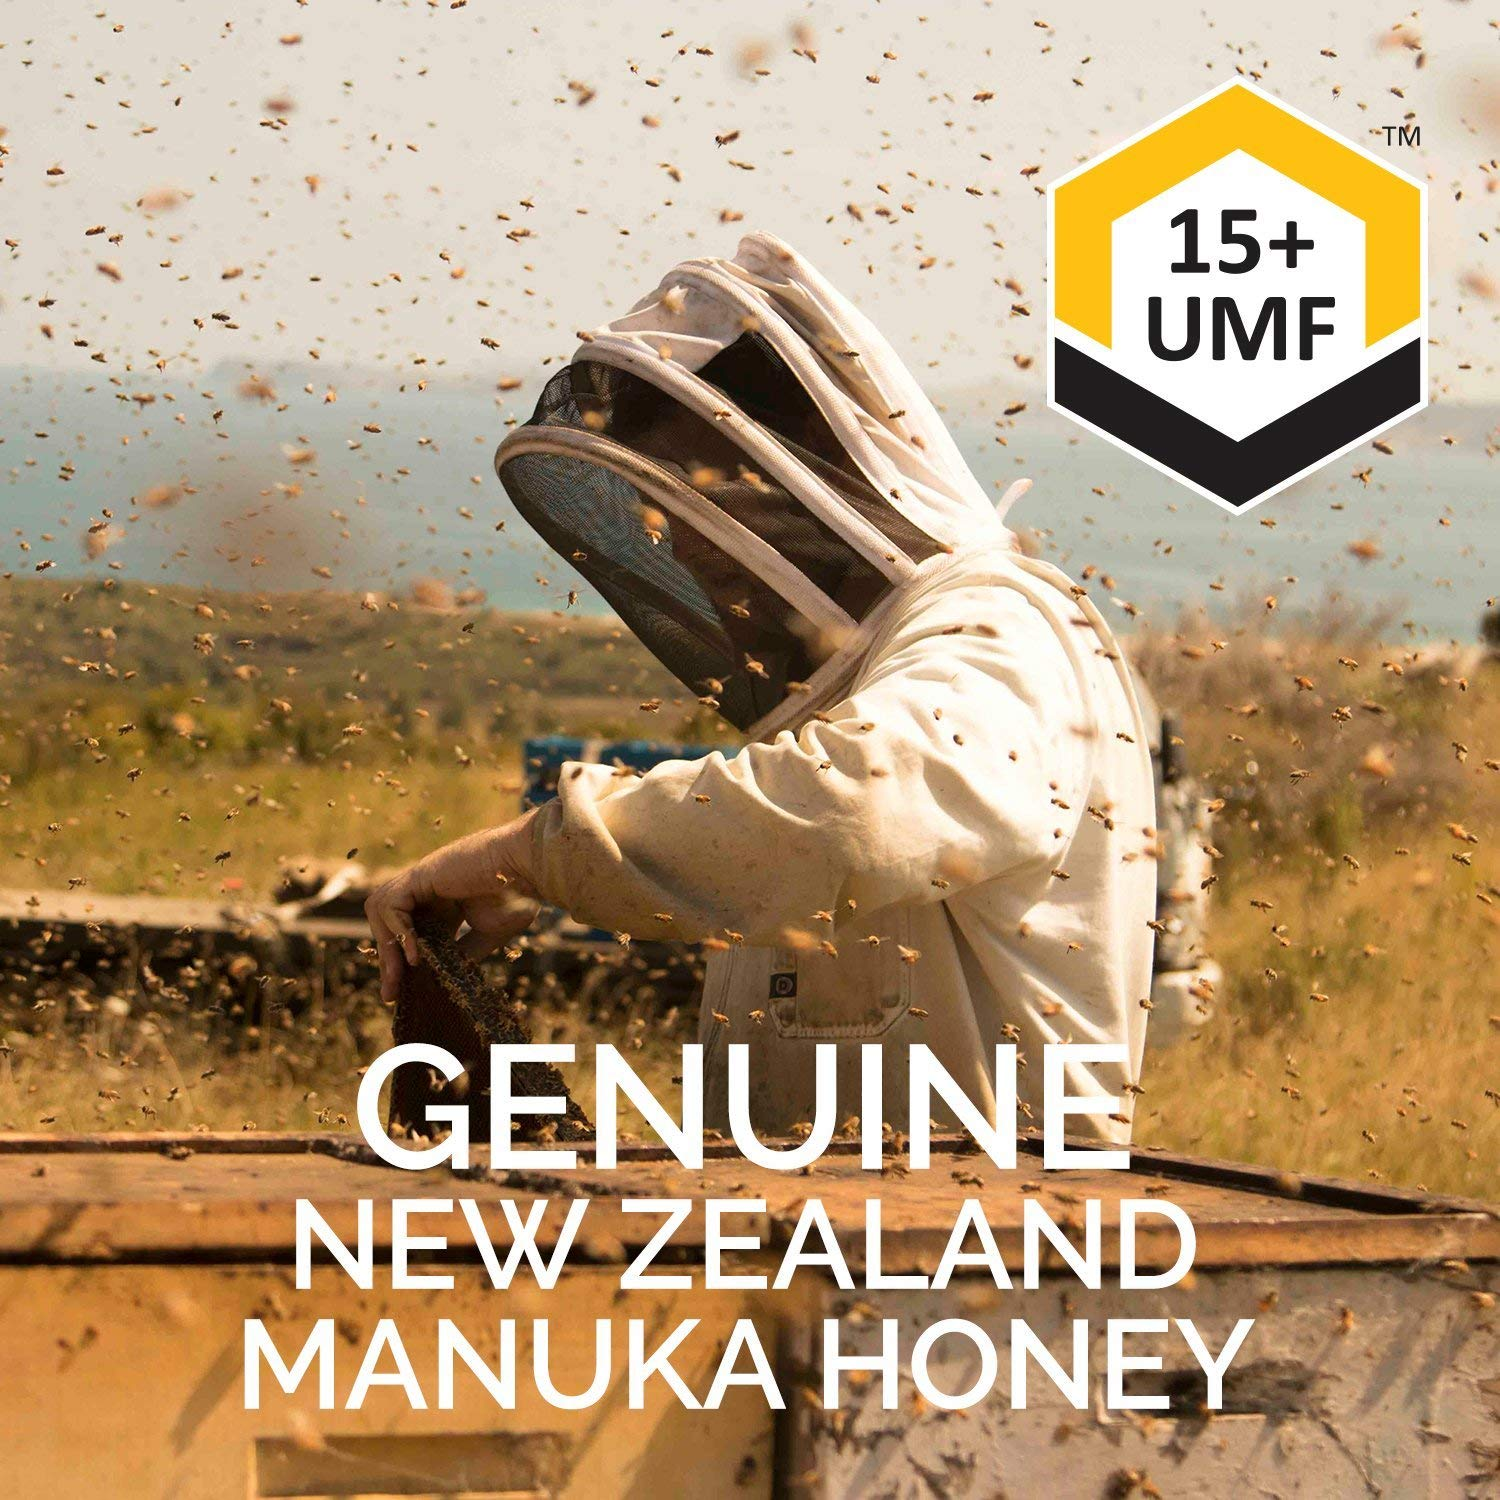 Manukora UMF 15+/MGO 500+ Raw Mānuka Honey (250g/8.8oz) Authentic Non-GMO New Zealand Honey, UMF & MGO Certified, Traceable from Hive to Hand by Manukora (Image #6)